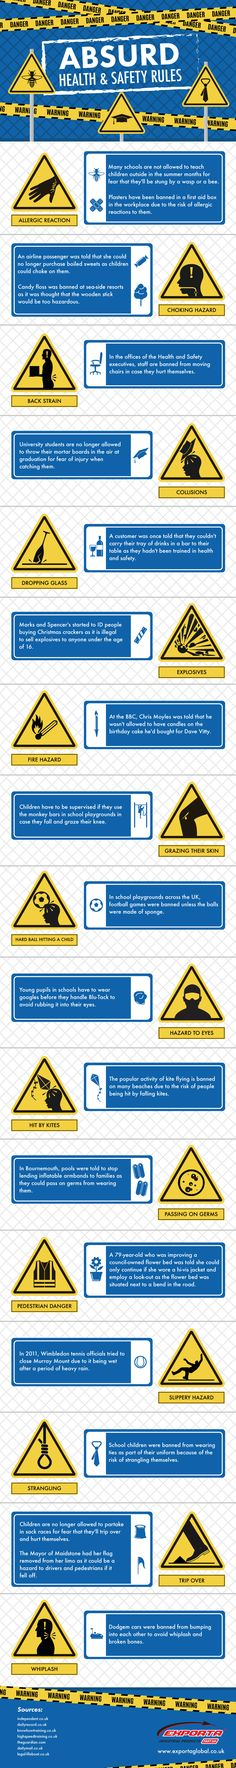 Absurd Health and Safety Rules #Infographic #Health #Safety